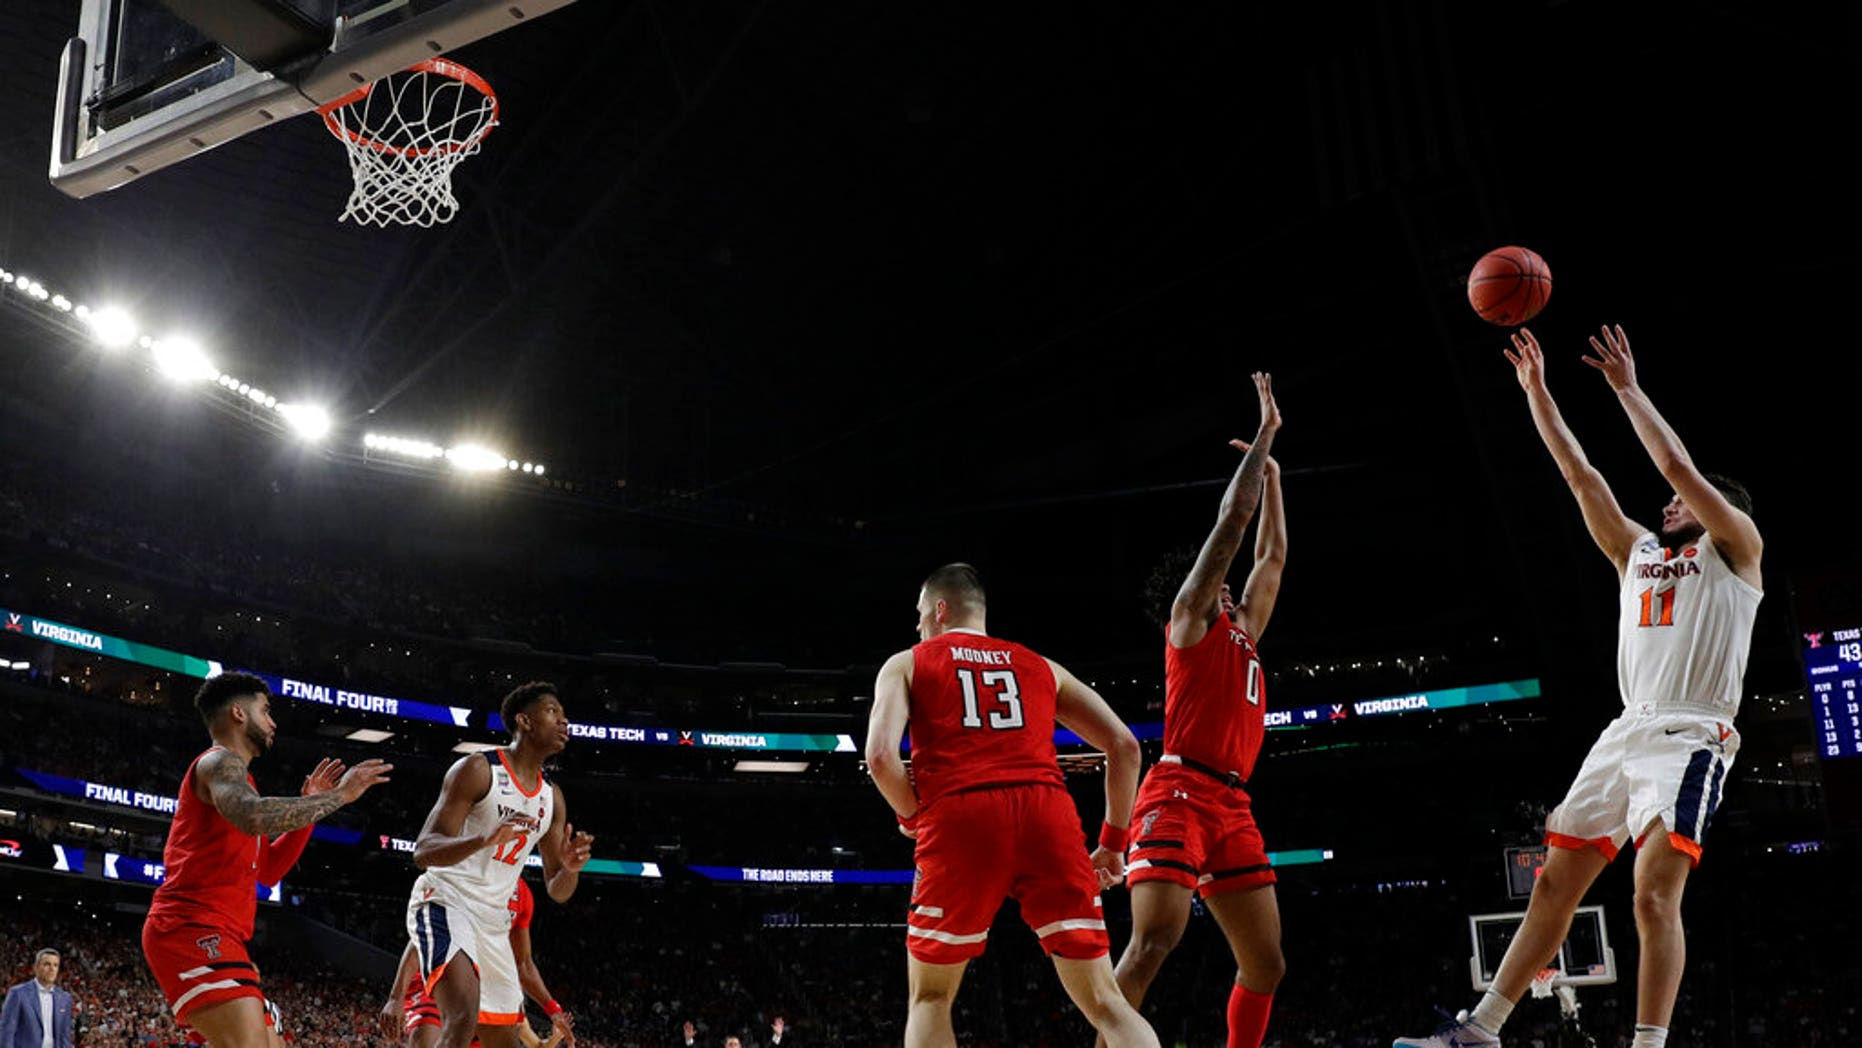 Virginia's Ty Jerome (11) makes a shot against Texas Tech's Kyler Edwards (0) during the second half in the championship of the Final Four NCAA college basketball tournament, Monday, April 8, 2019, in Minneapolis.